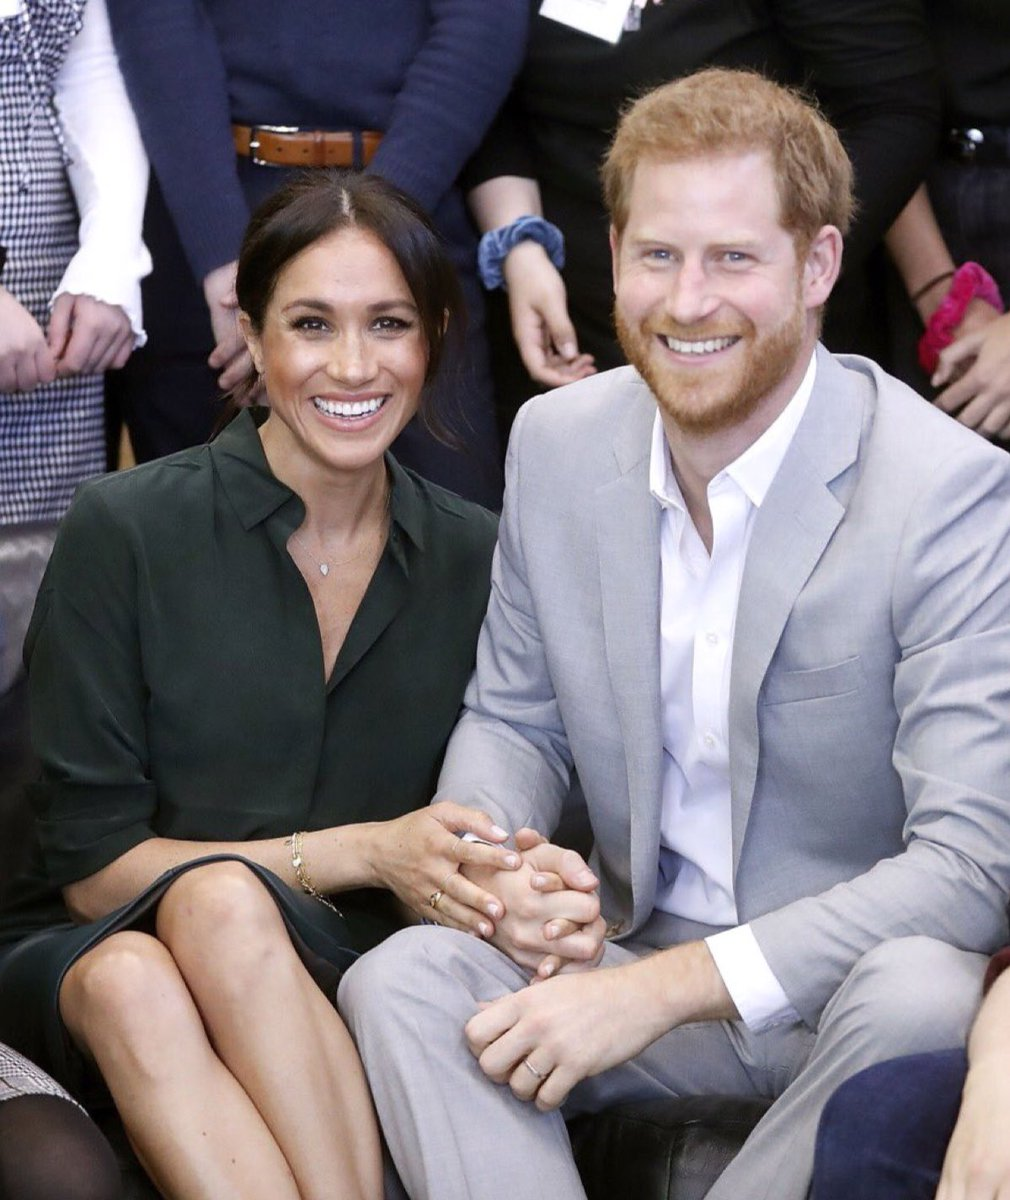 Baby News! Duchess of Sussex Meghan Markle is expecting a child in the spring.